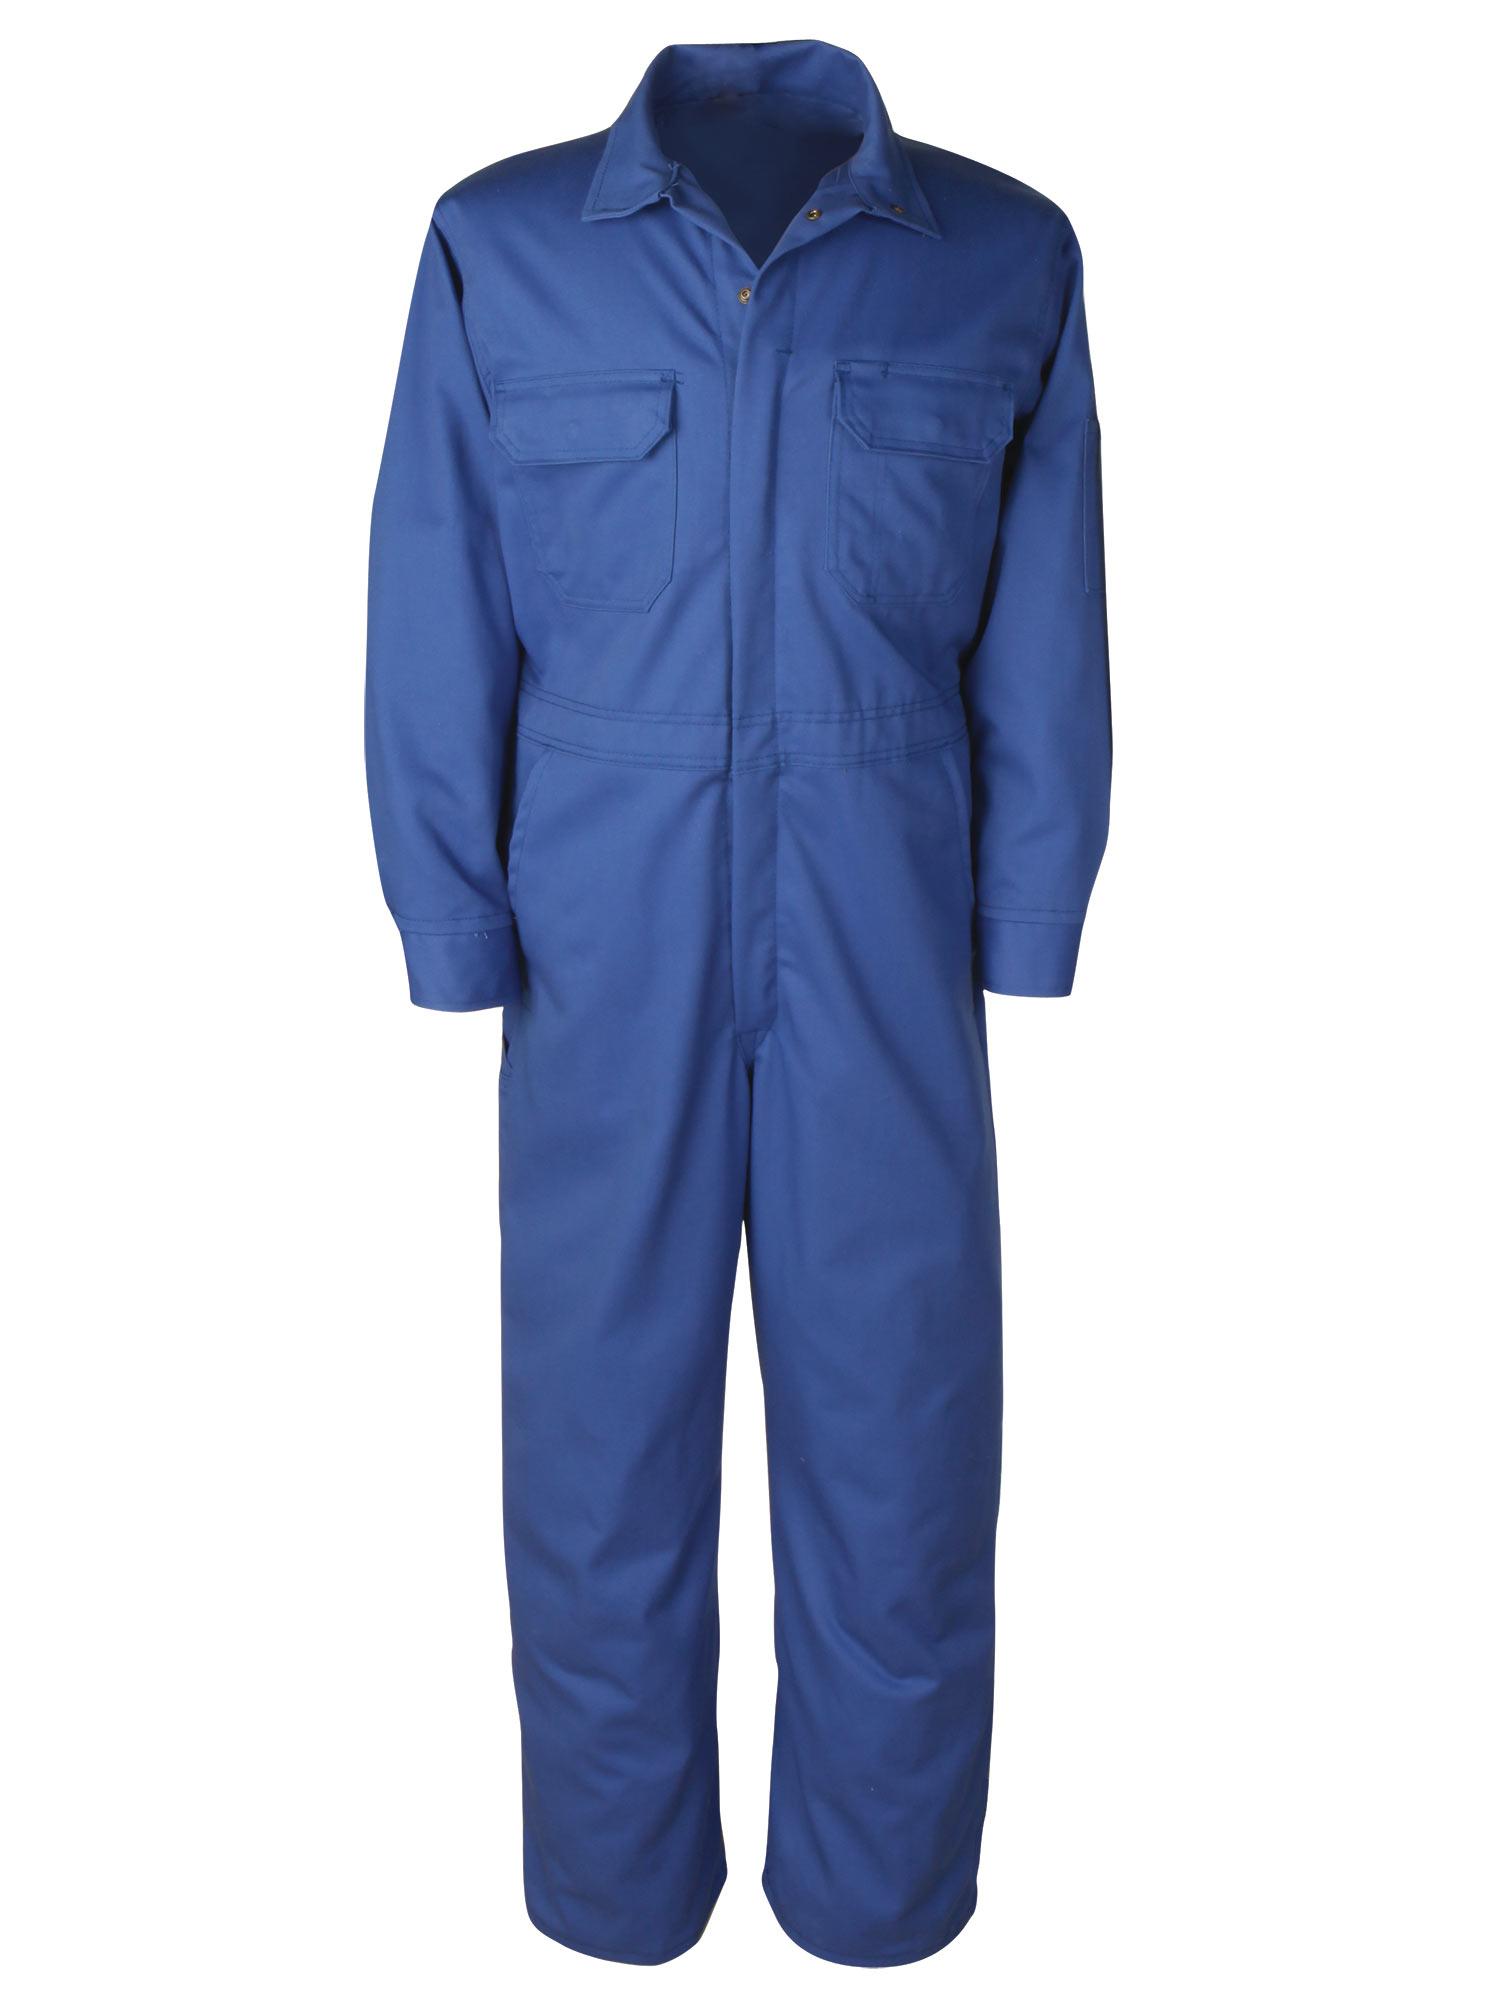 Big Bill 9 Oz Westex Ultra Soft 174 Unlined Deluxe Coverall